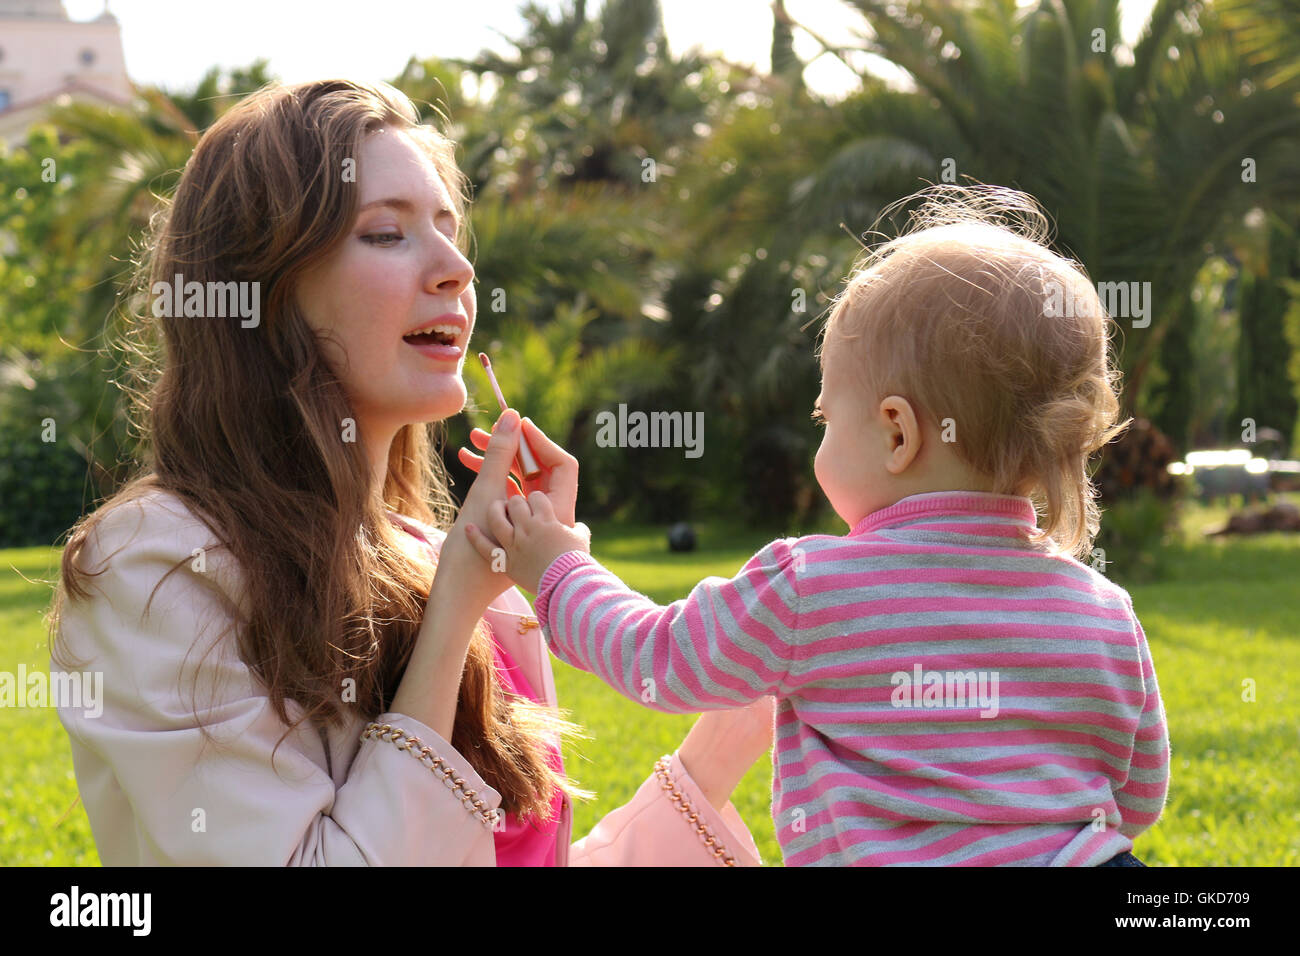 Clouse-up portrait. Mother and her little daughter making up. horizontal - Stock Image